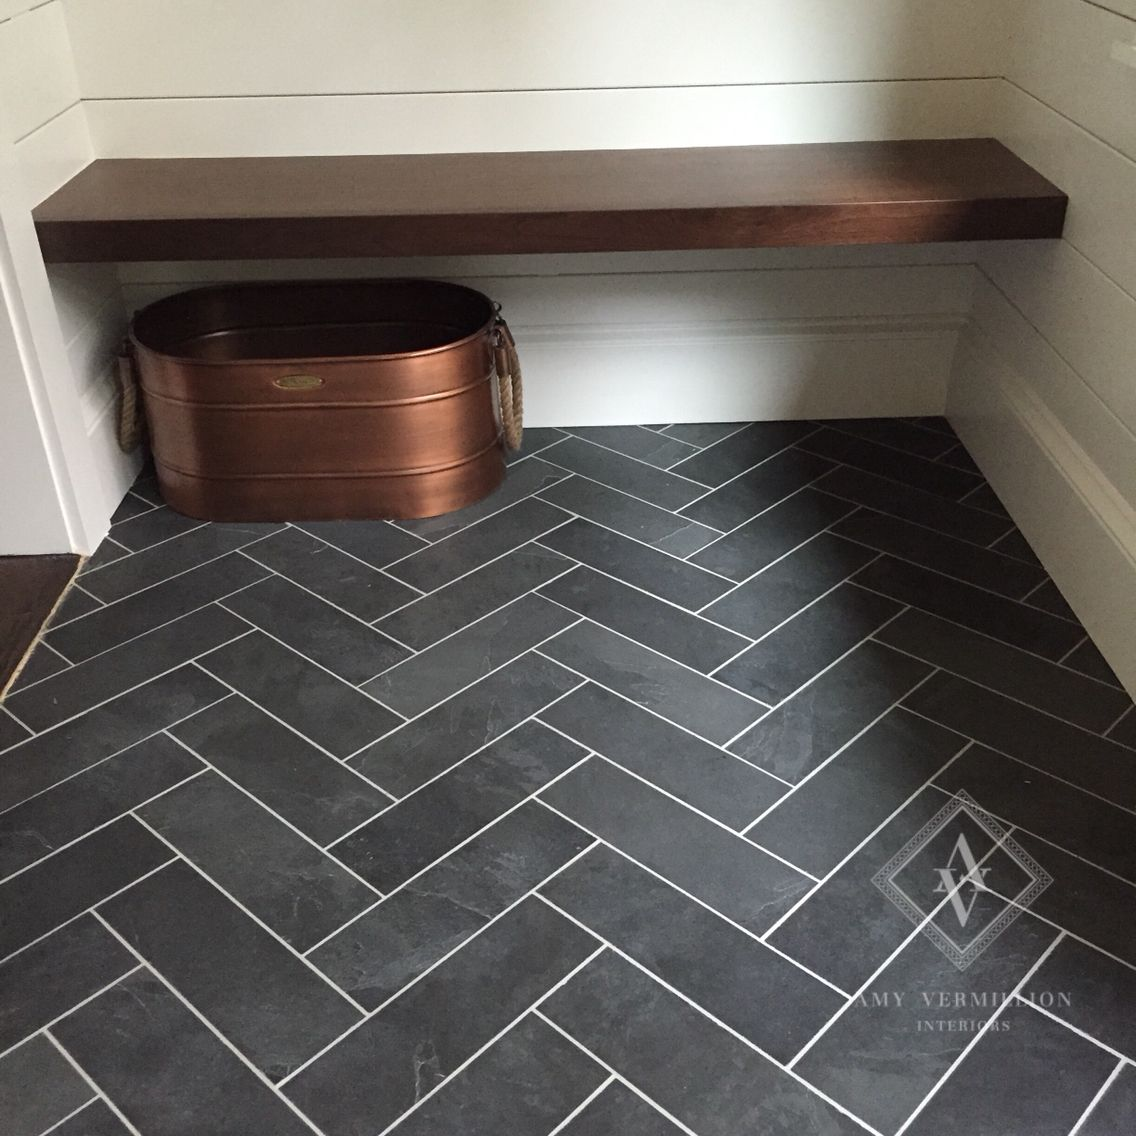 Amy Vermillions Home Hand Cut Herringbone Slate Tile Floor In - 4 inch slate tile